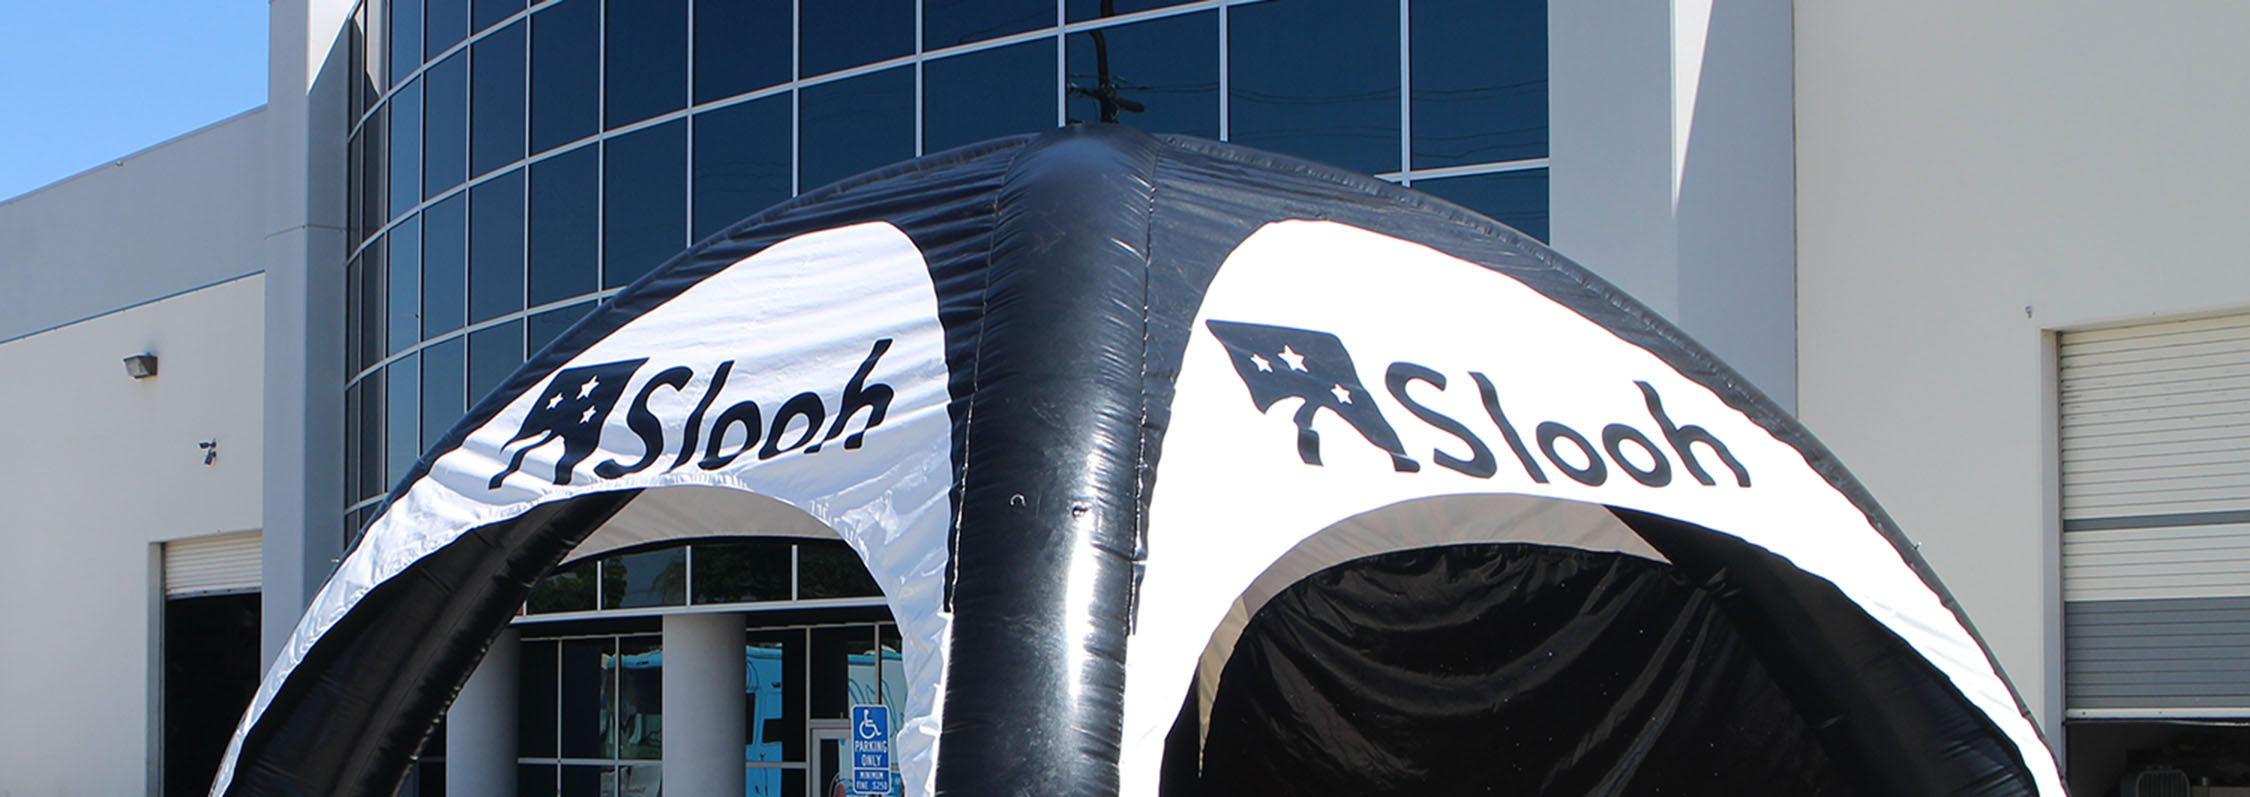 inflatable-arched-tent-header.jpg